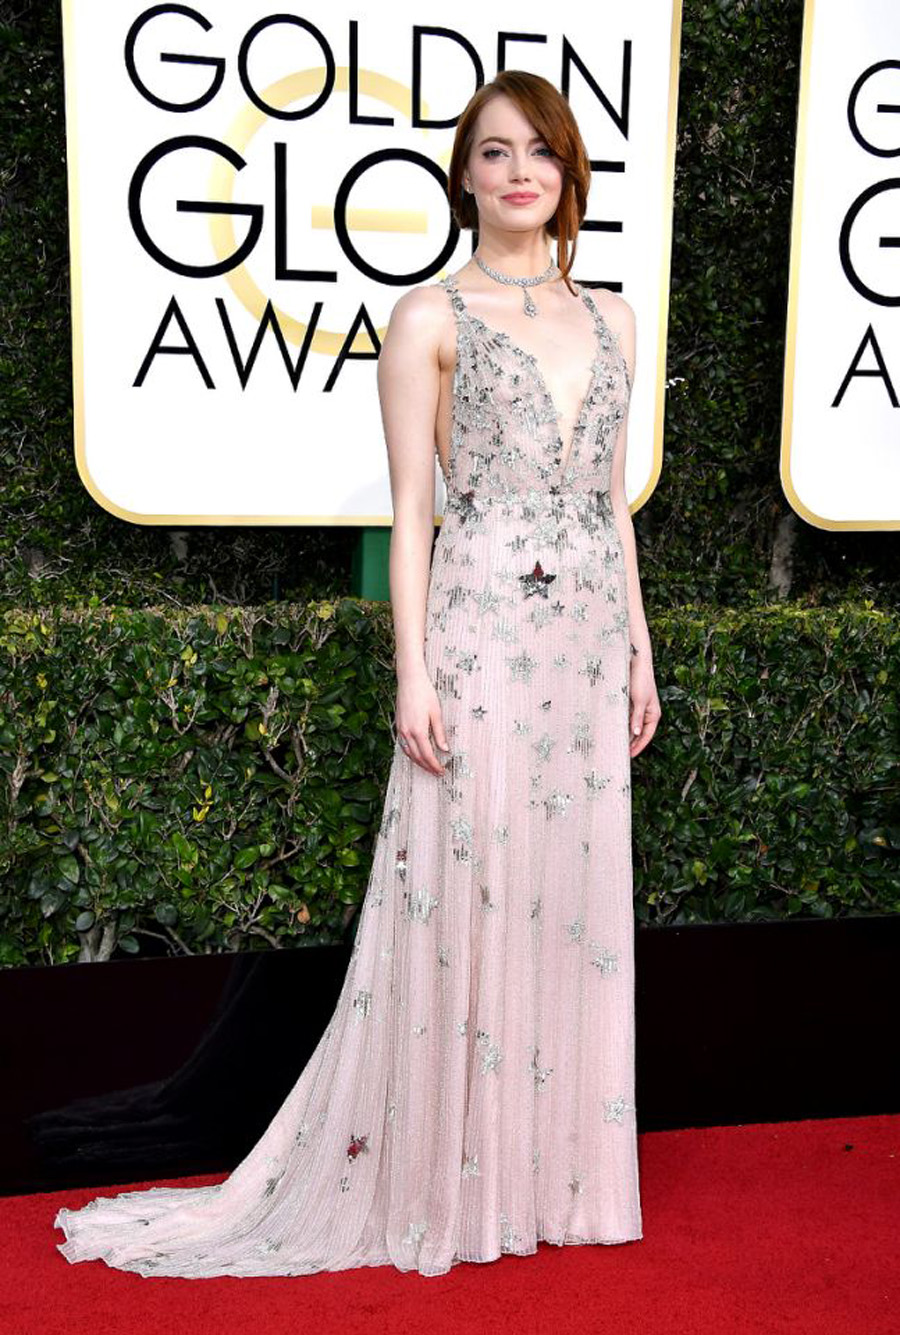 2017 Golden Globes Looks - Emma Stone